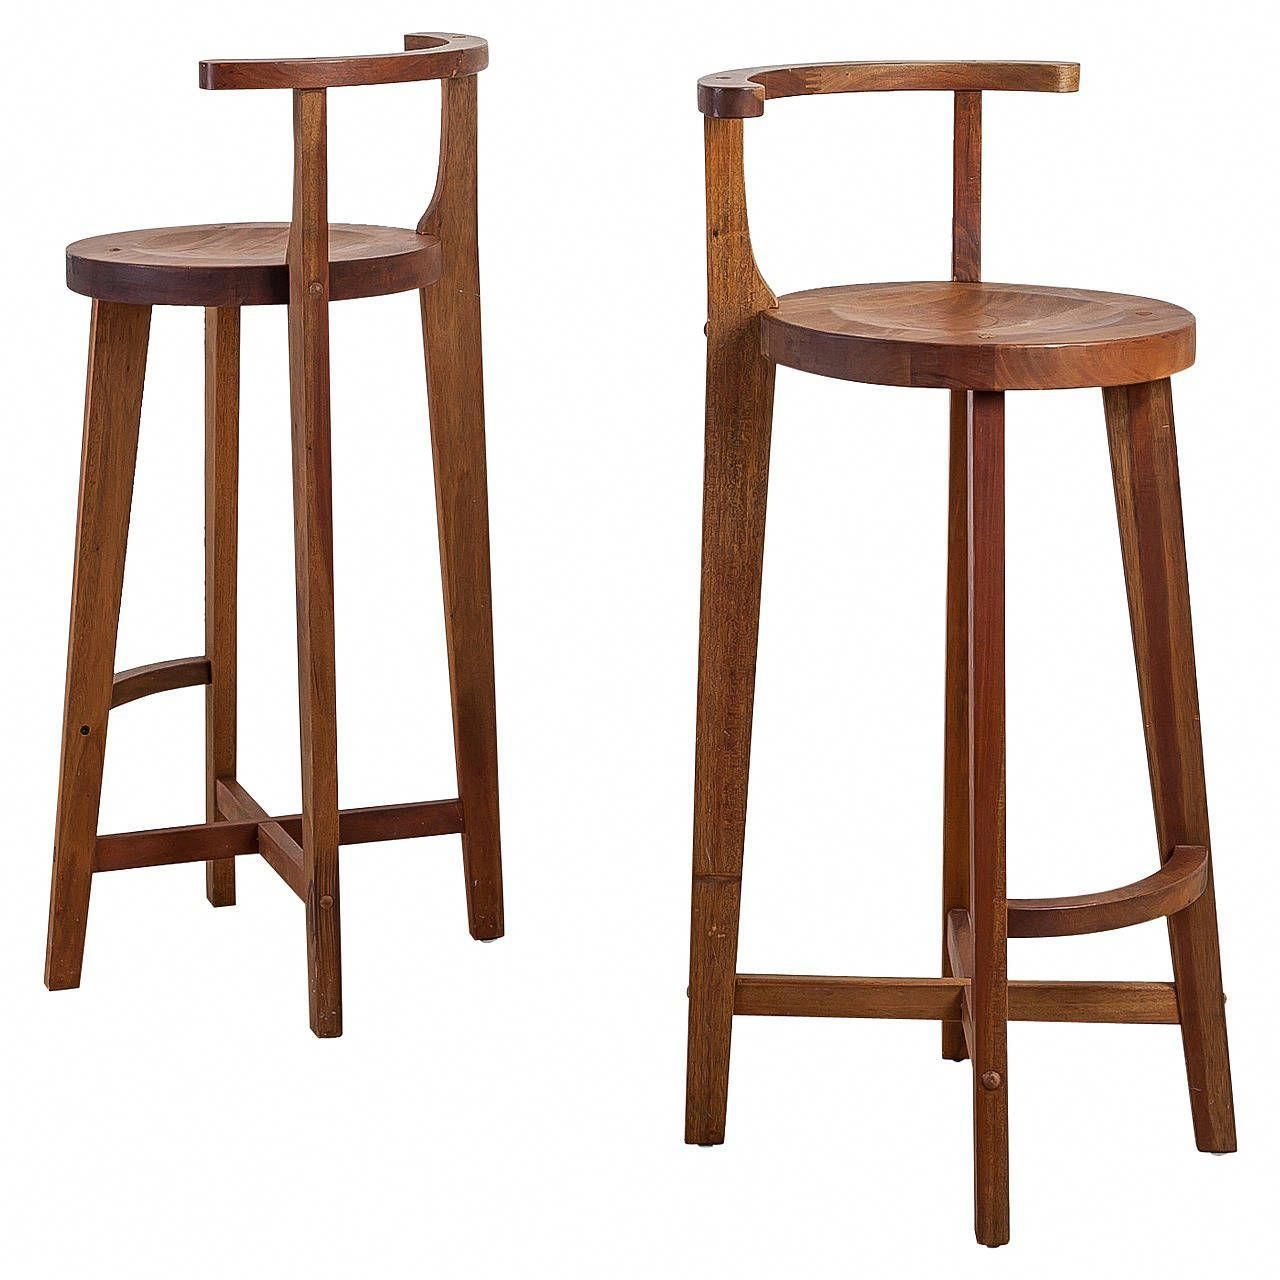 Learn Additional Details On Bar Furniture For Sale Browse Through Our Web Site Bar Chairs Diy Bar Stools Wooden Bar Stools